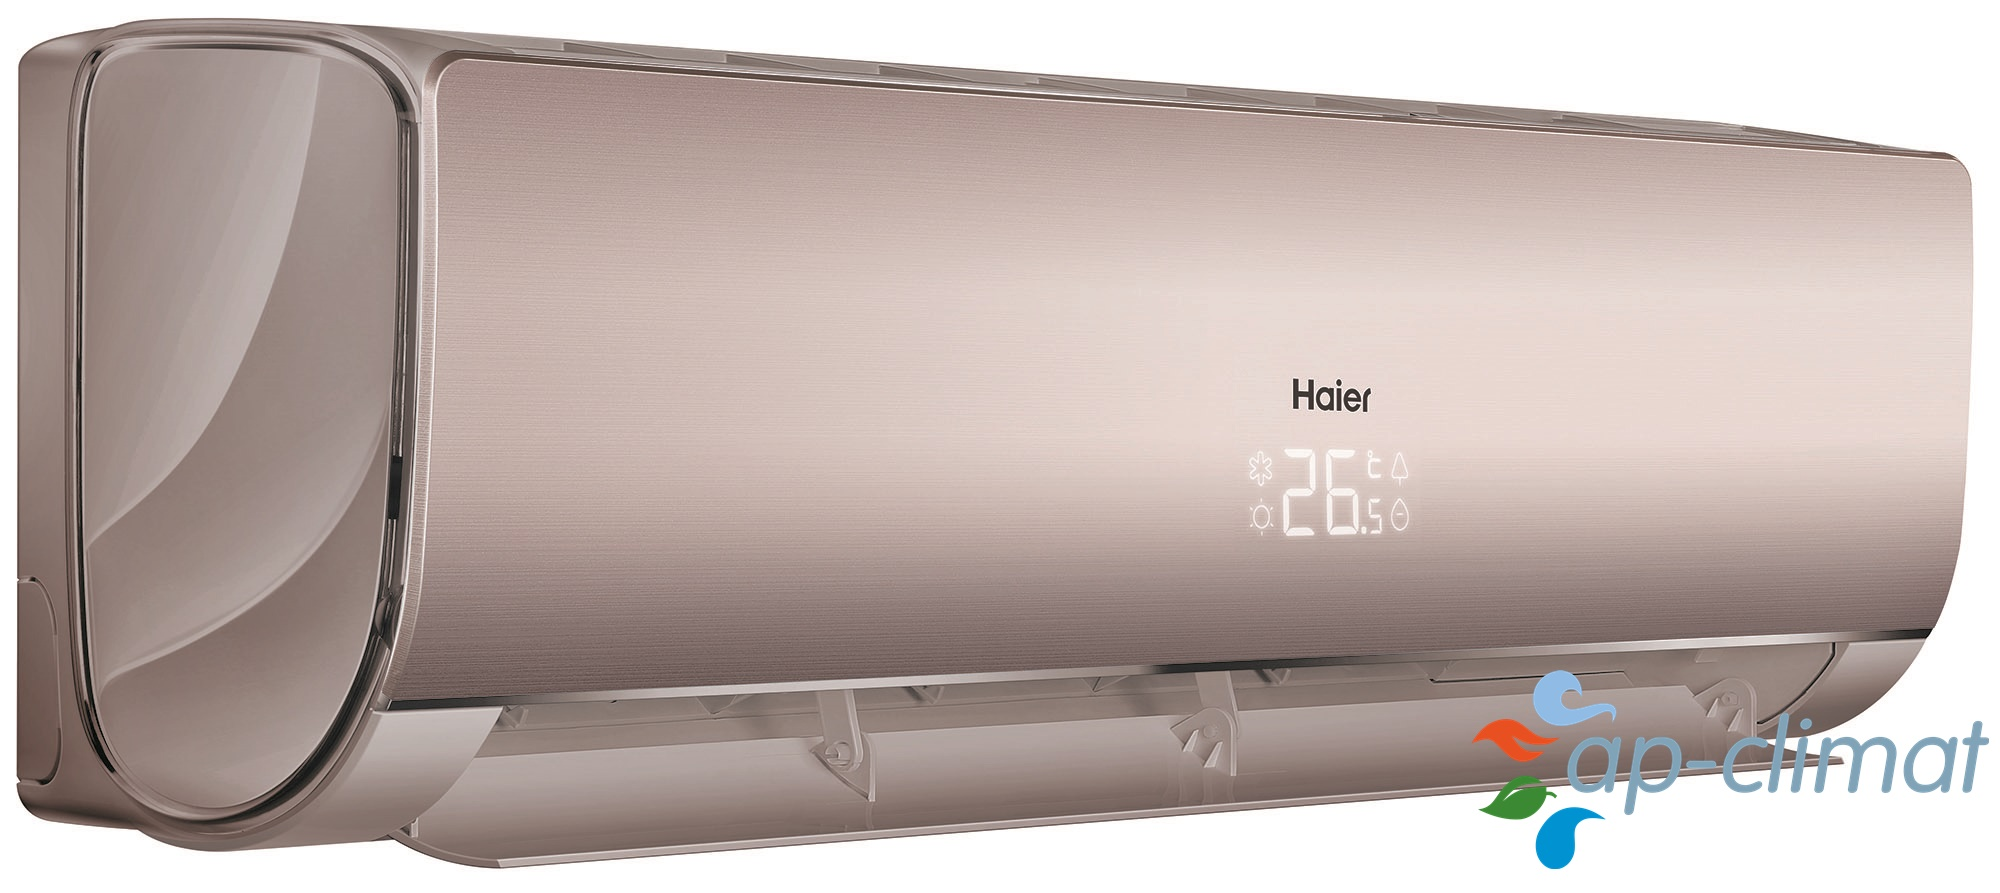 Сплит-система Haier AS09NS4ERA-G/1U09BS3ERA